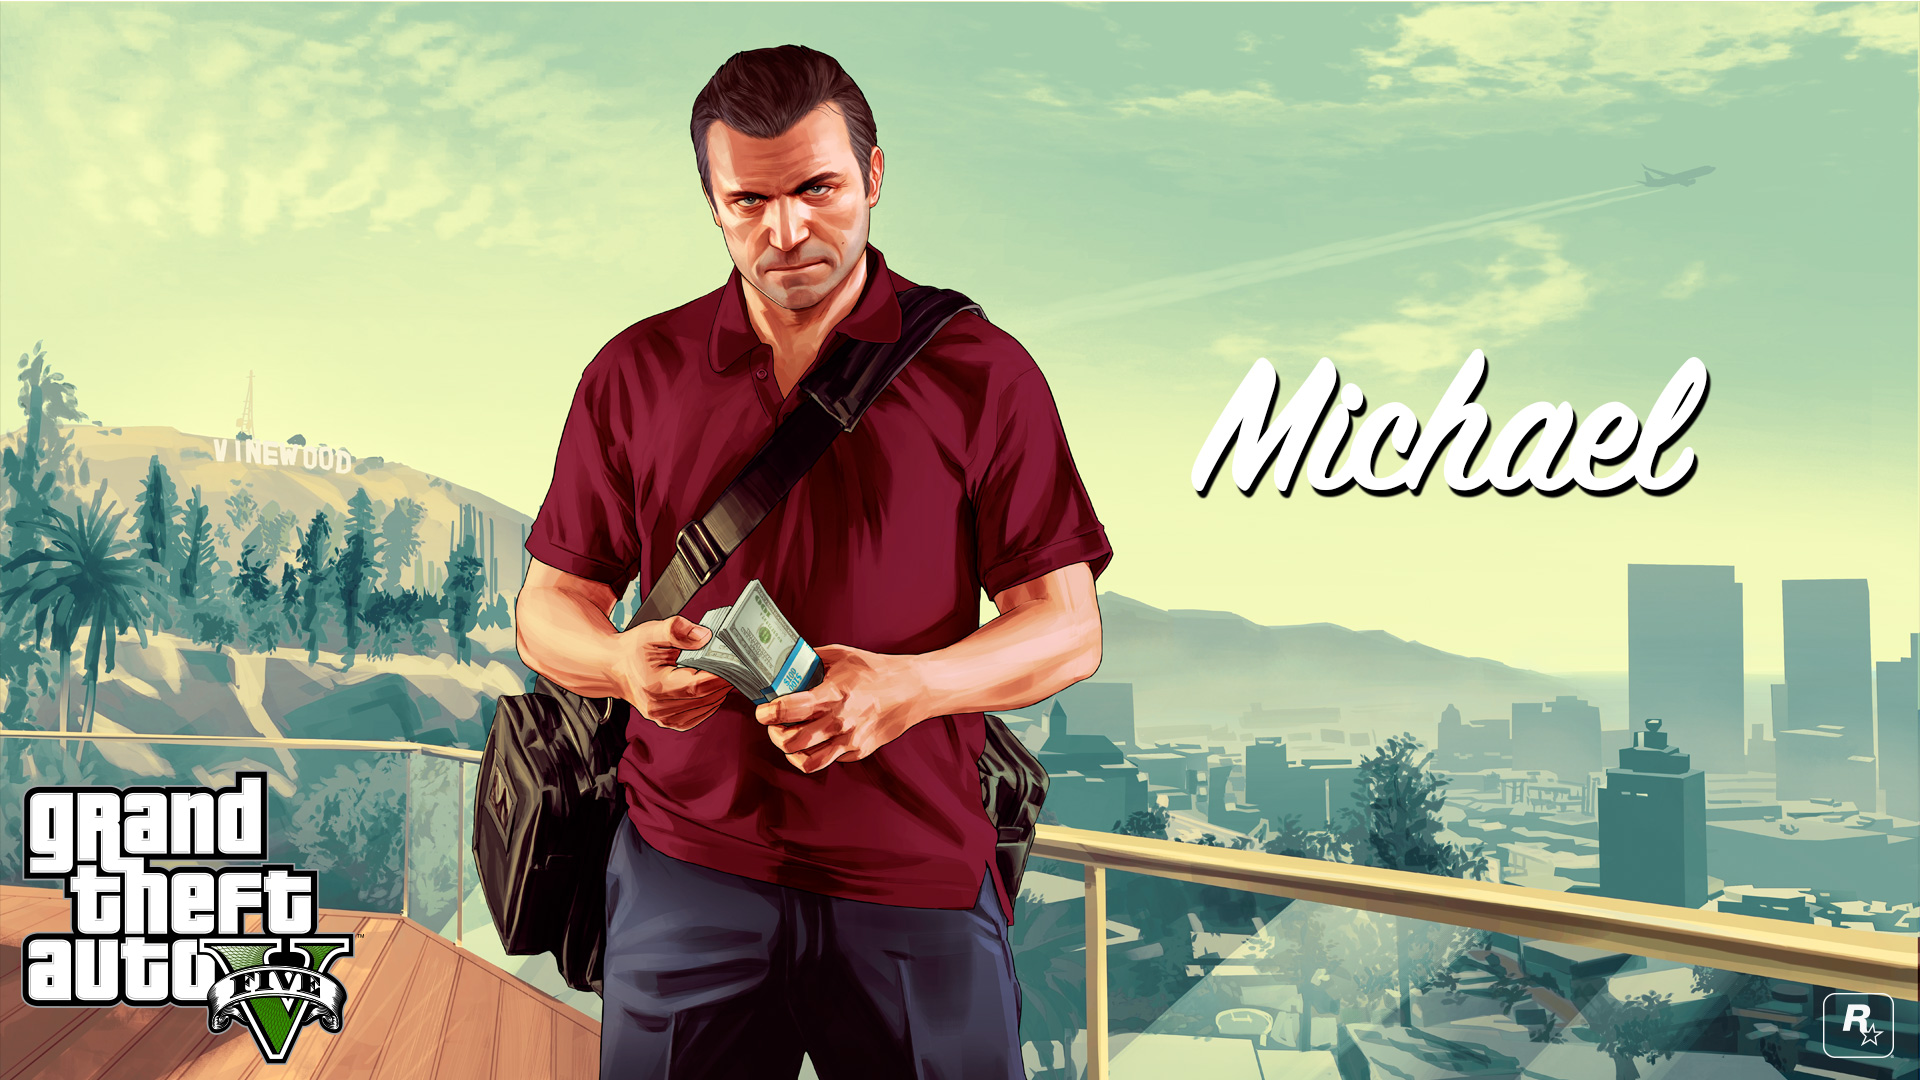 Gta 5 Michael_with_money_1920x1080 Wallpaper